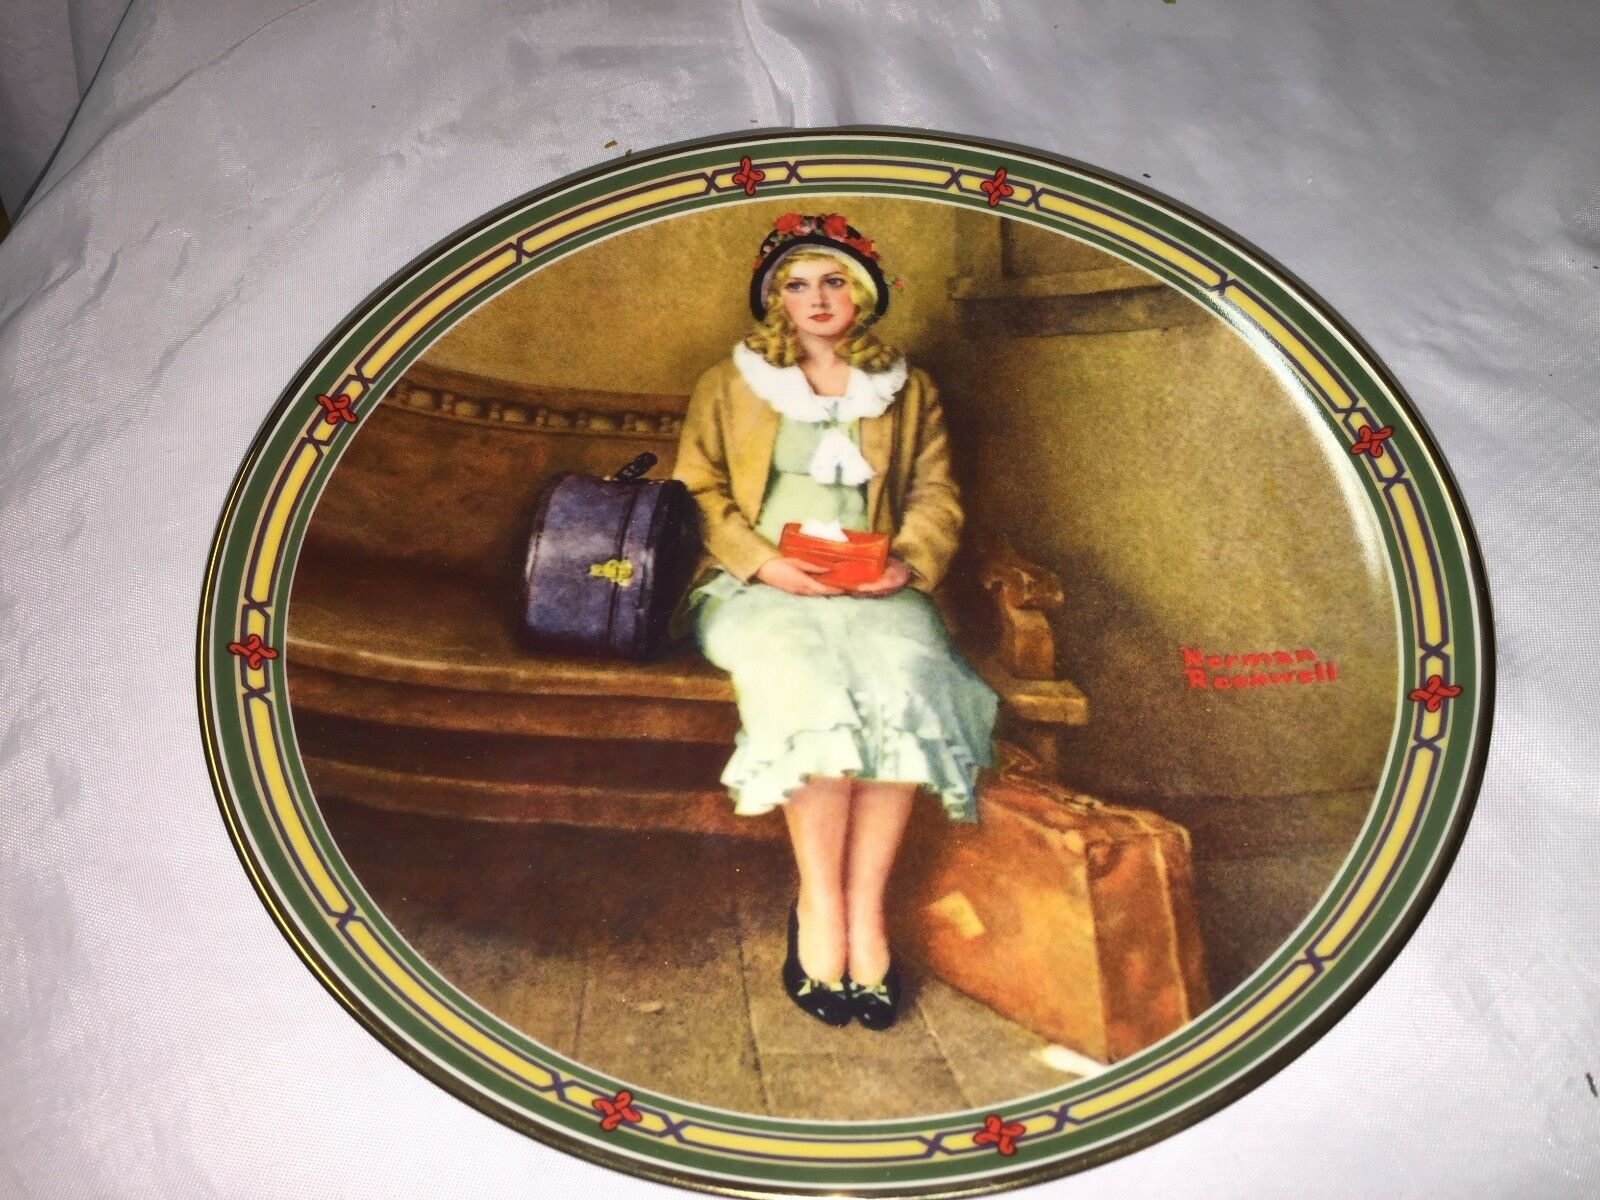 """Norman Rockwell collector plate """"A Young Girl's Dream"""" 1985, Knowles         9z"""